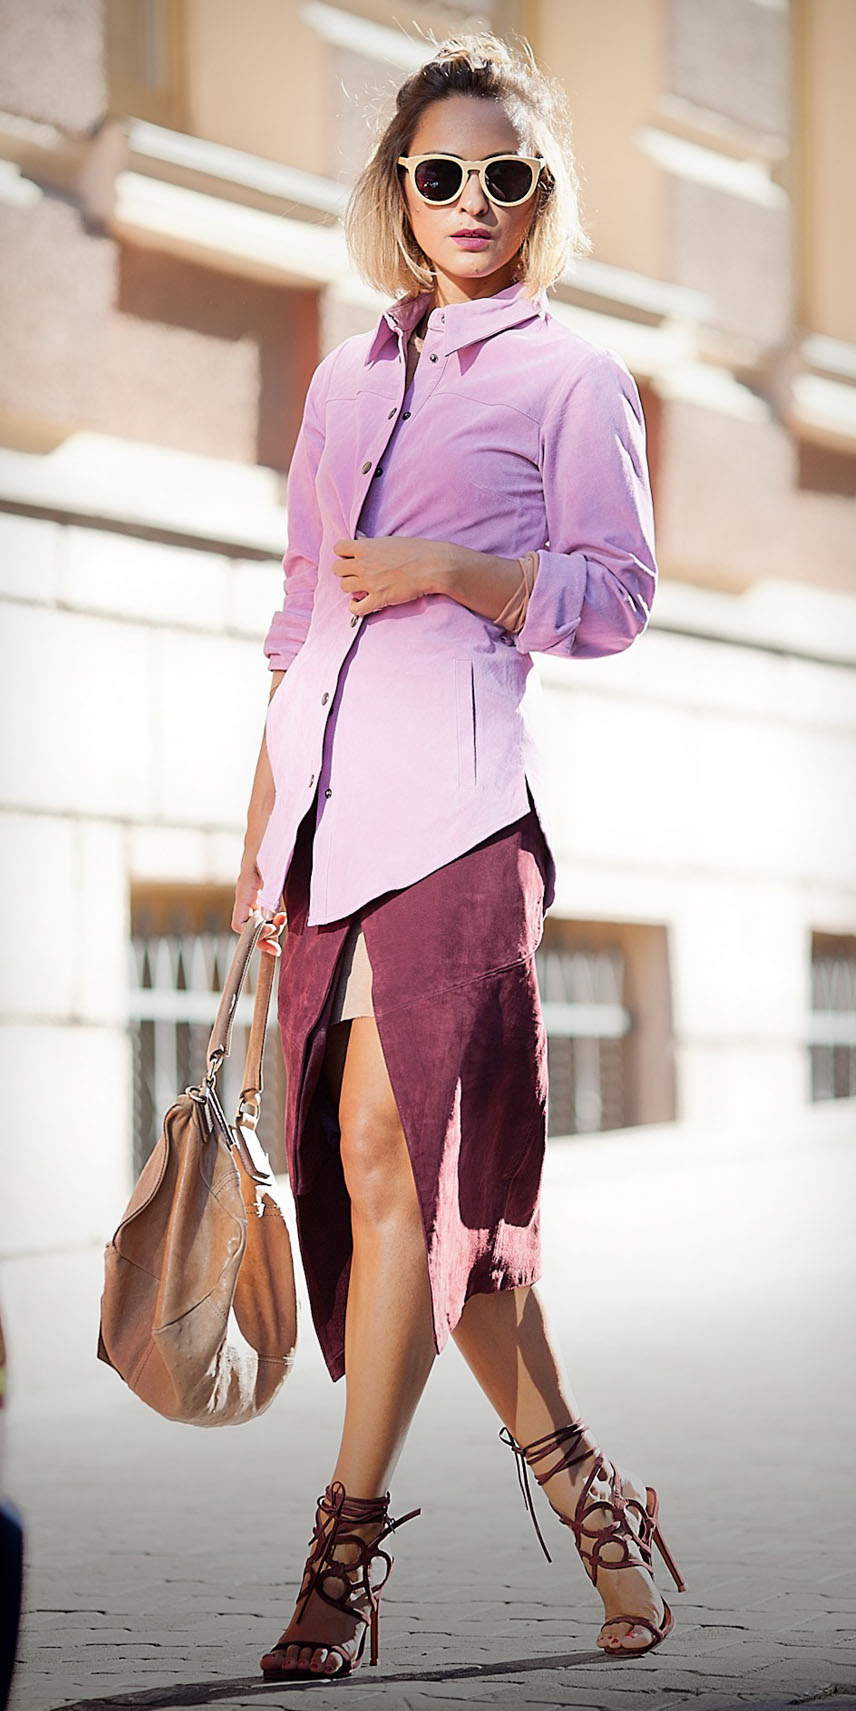 burgundy-midi-skirt-wrap-tan-bag-blonde-sun-bob-burgundy-shoe-sandalh-tonal-pink-light-collared-shirt-spring-summer-lunch.jpg